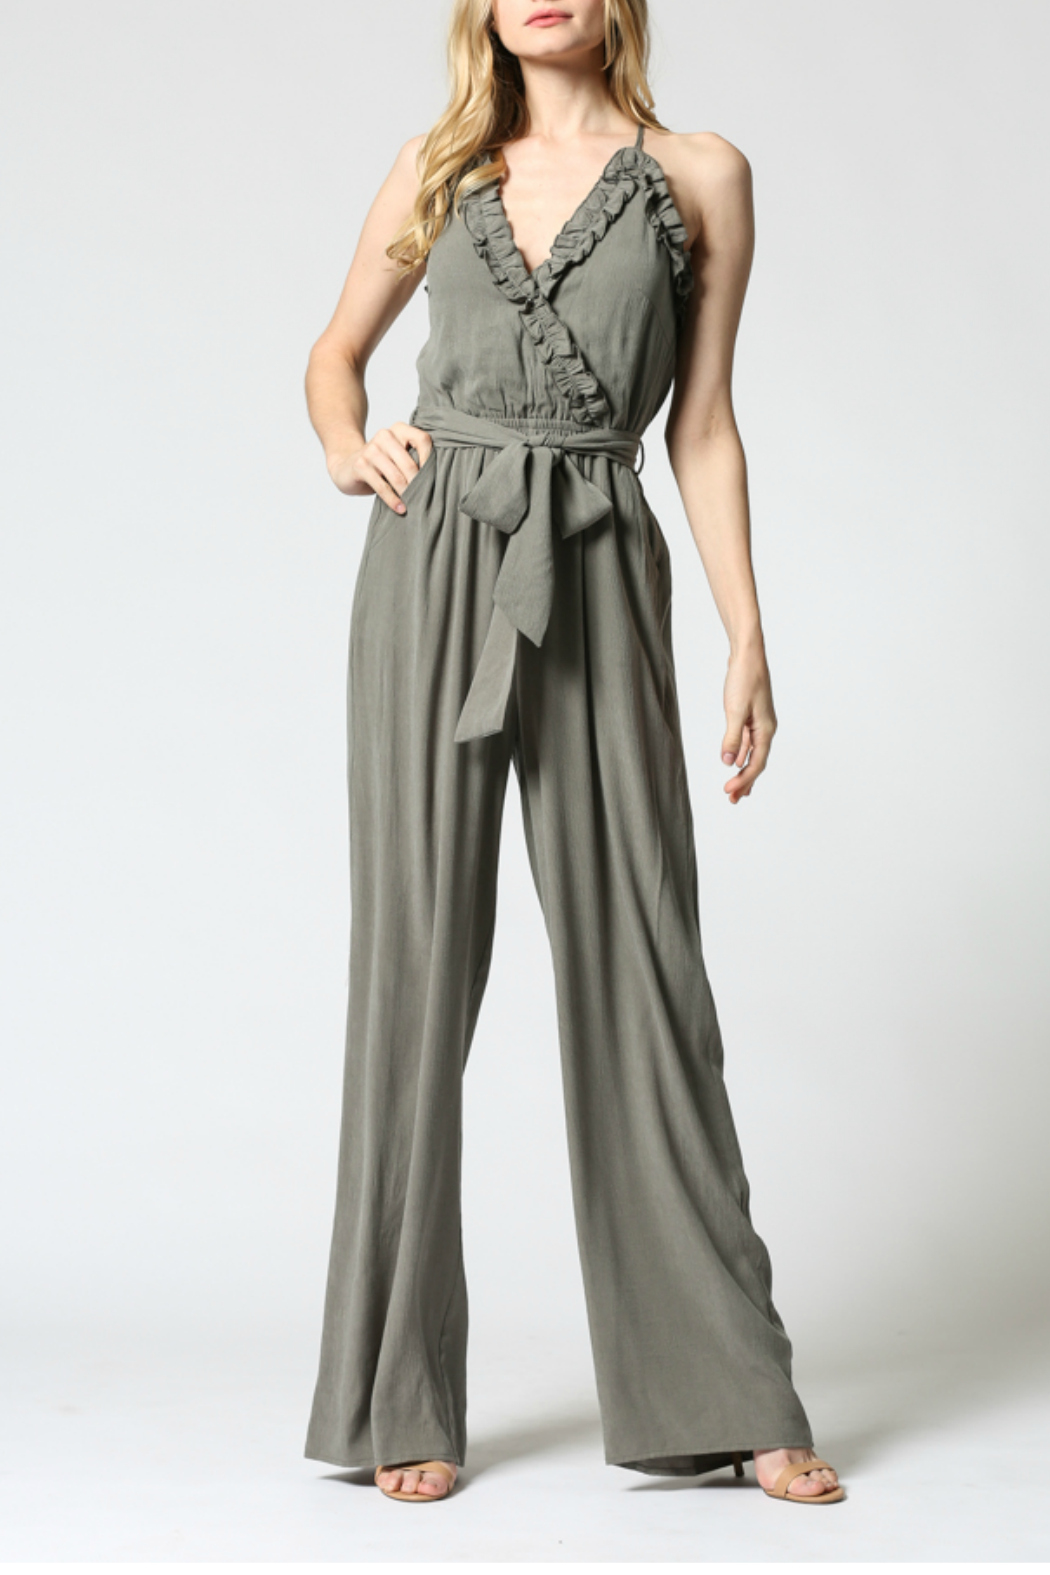 FATE by LFD Ruffled edge jumpsuit - Main Image